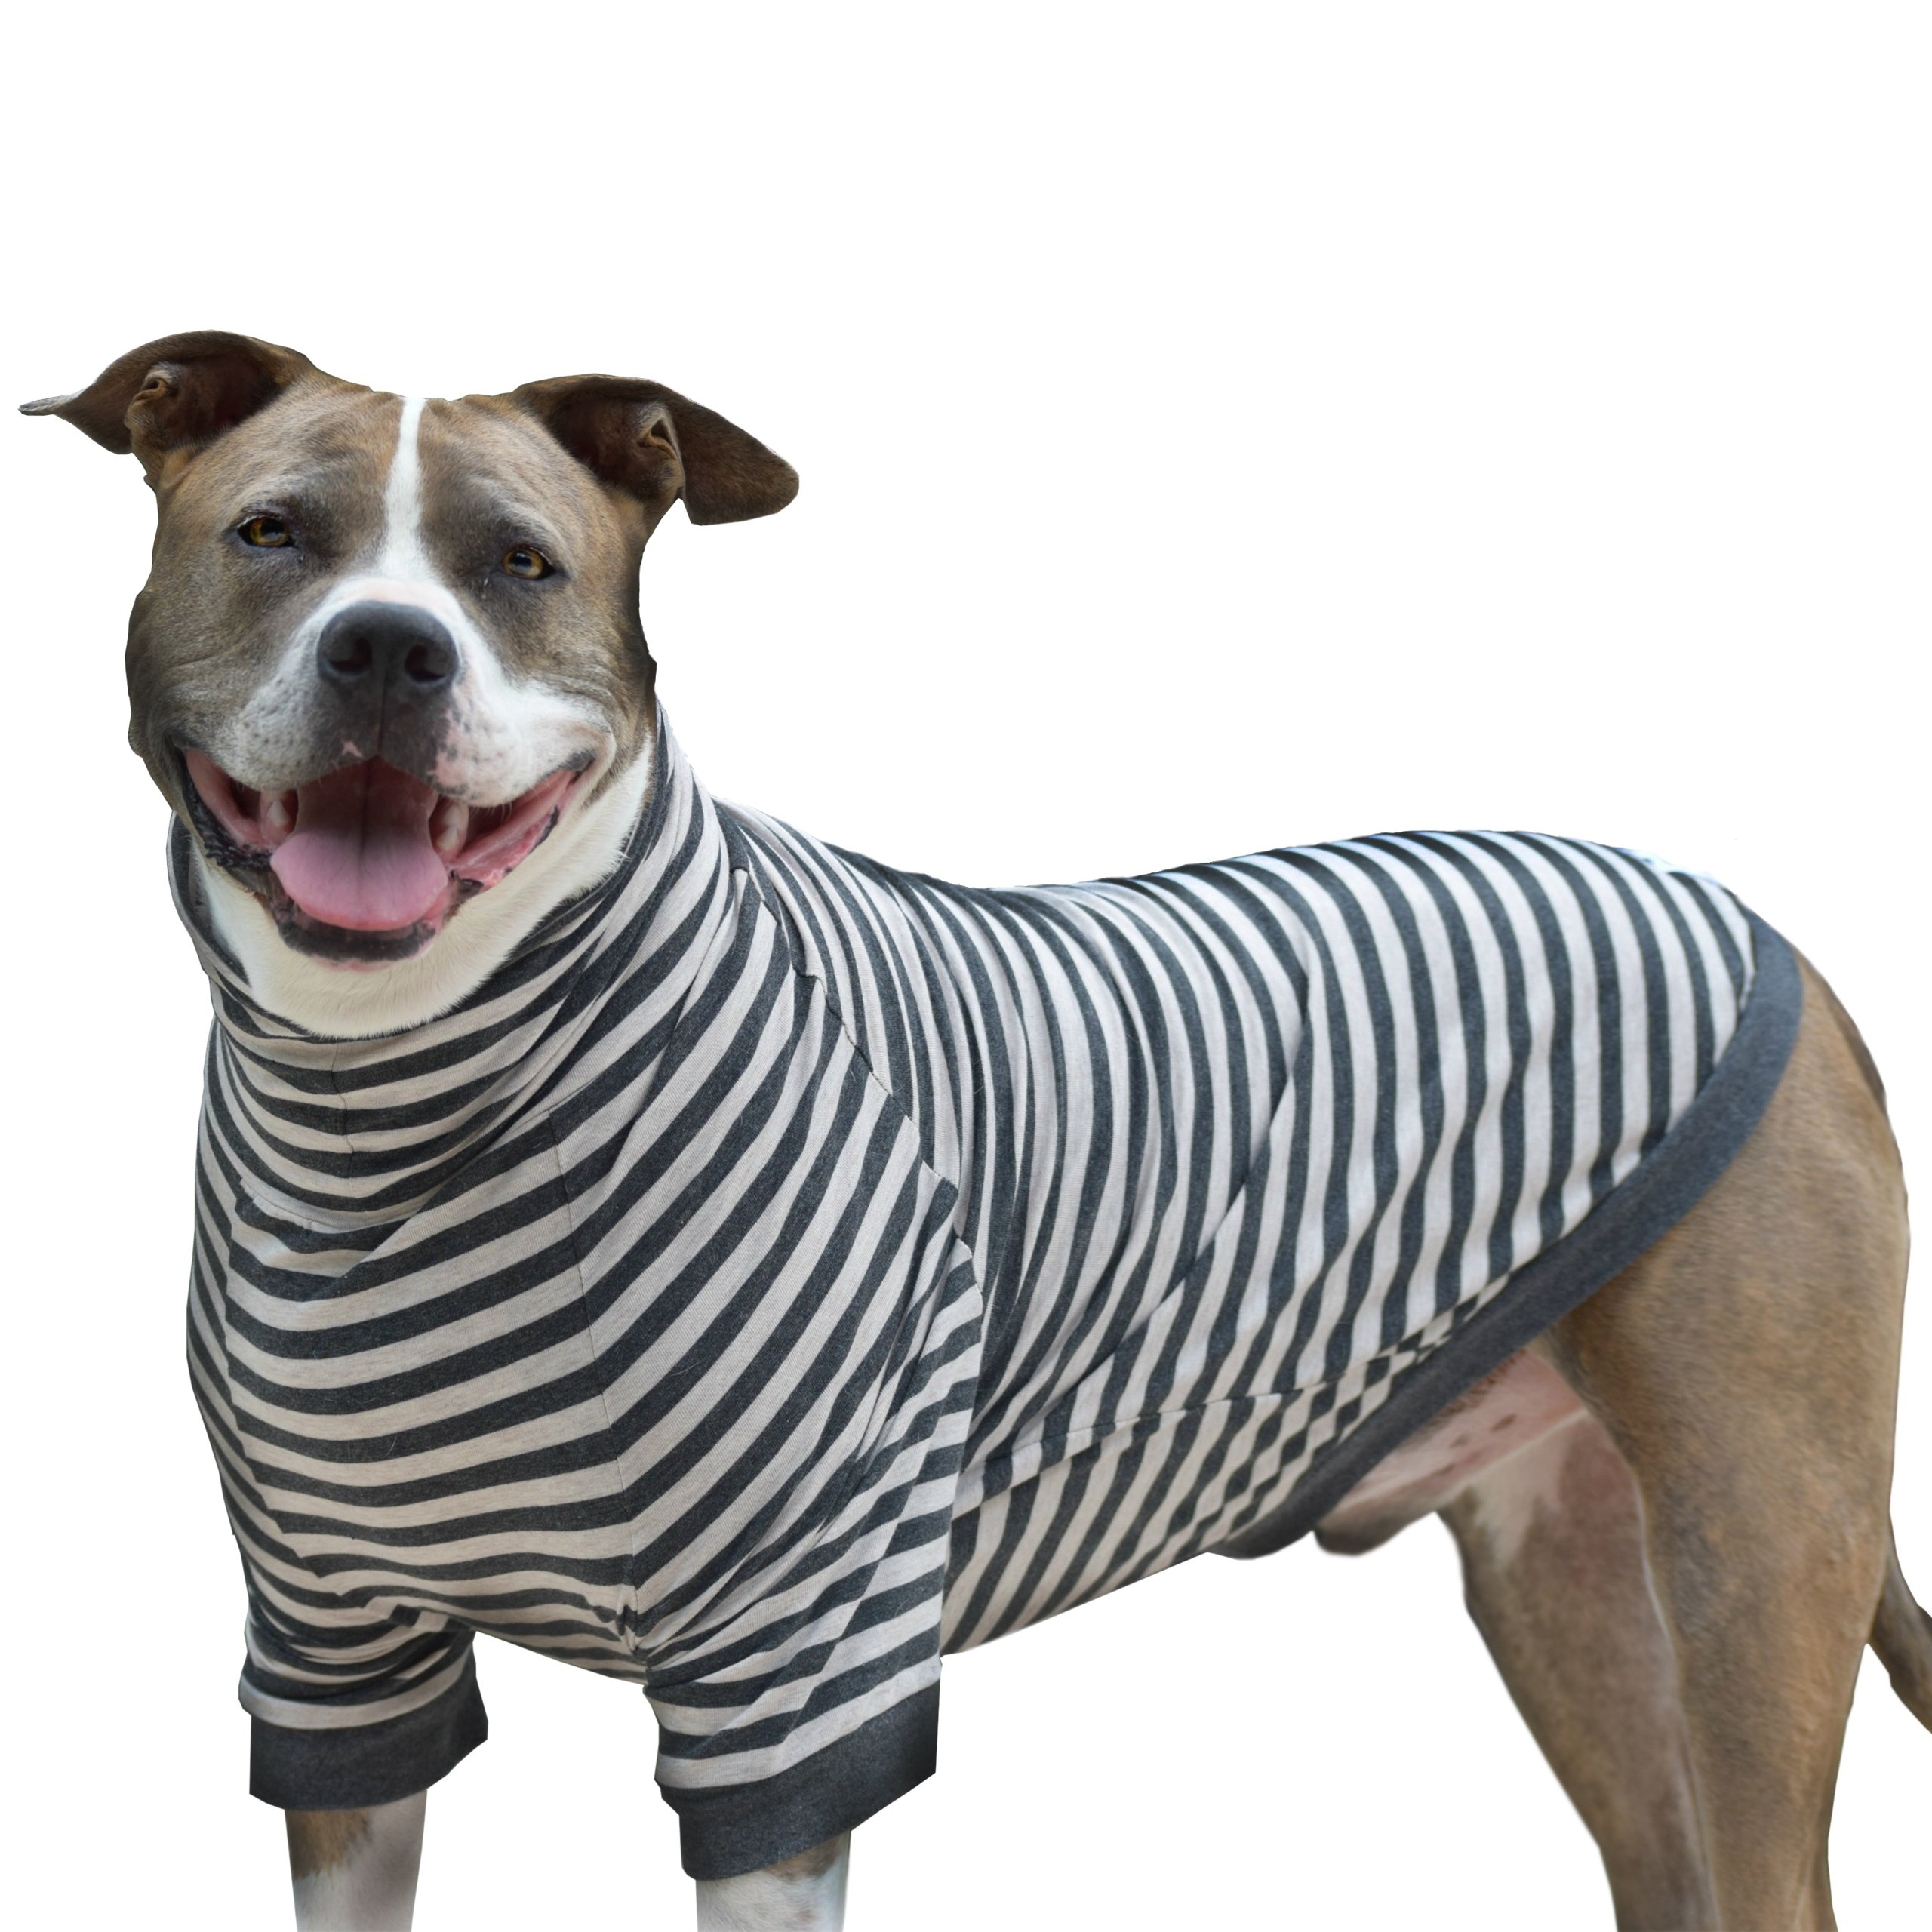 Tooth & Honey Big Dog Stripe Shirt Pullover Full Belly Coverage (Large) by Tooth & Honey